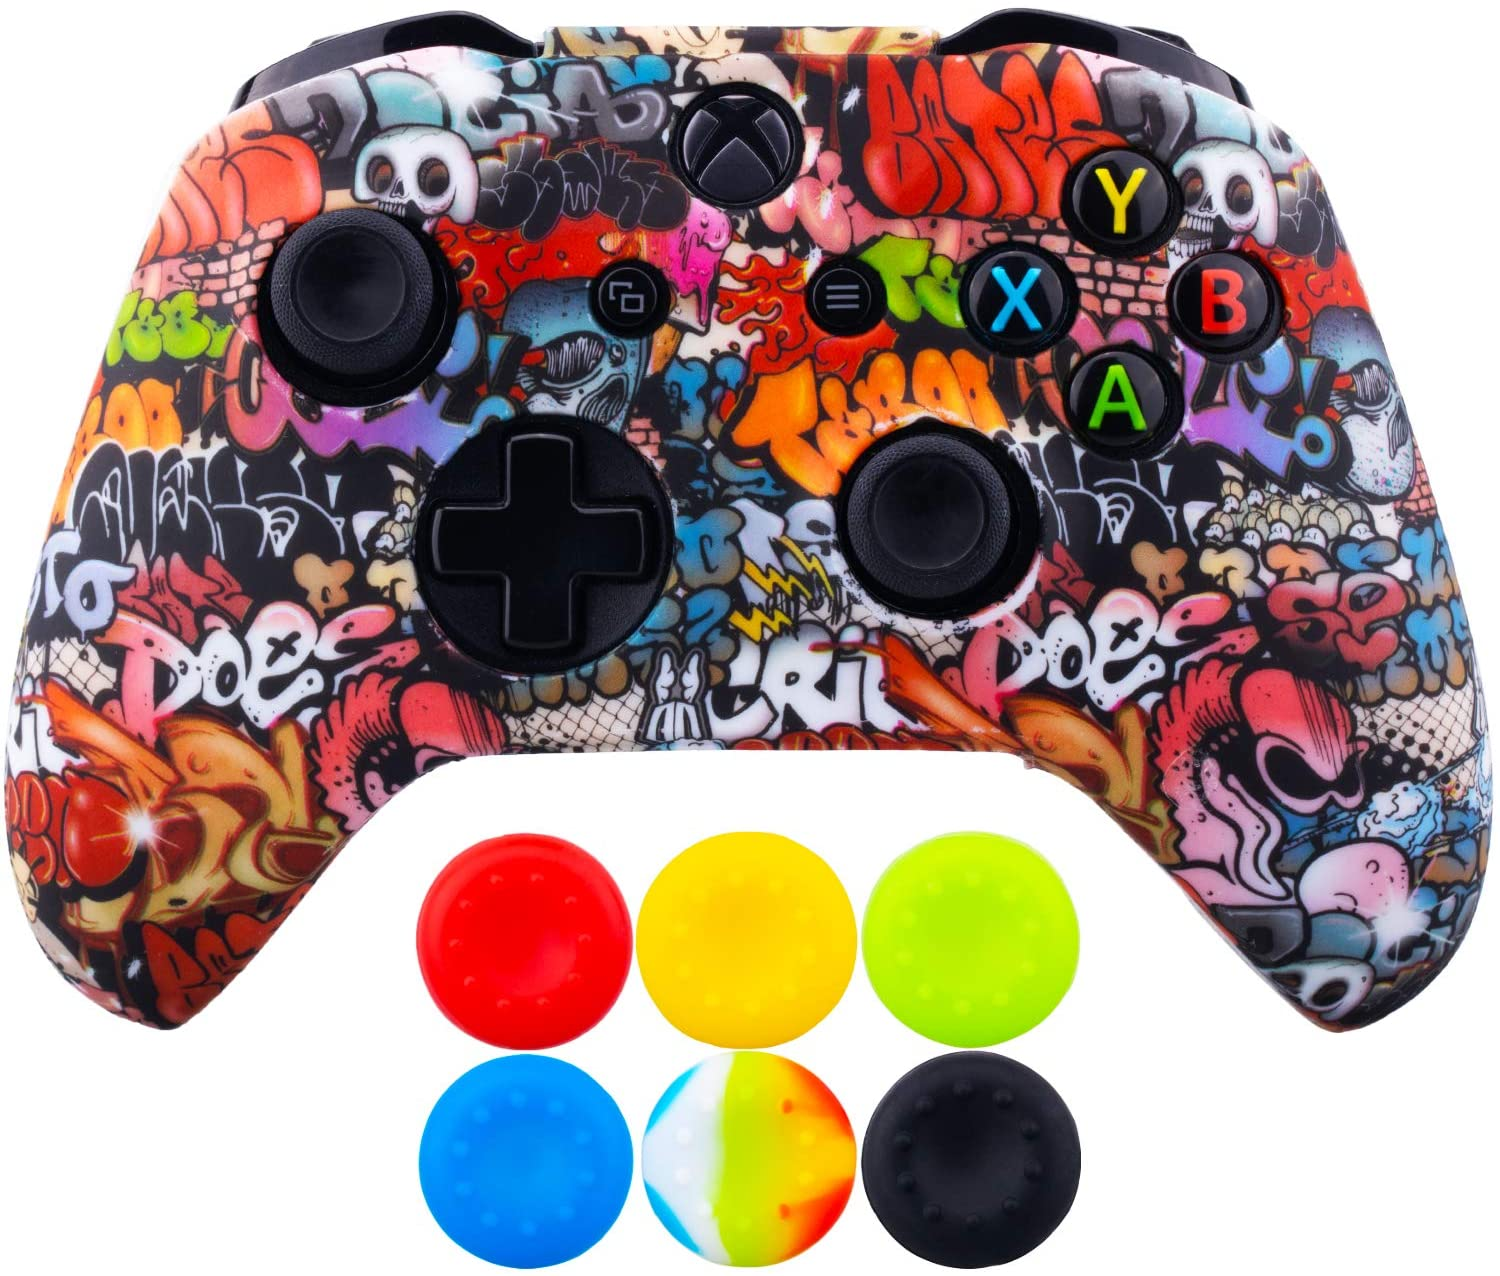 9CDeer 1 Piece of SiliconeTransfer Print Protective Cover Skin + 6 Thumb Grips for Xbox One/S/X Controller Small Skulls